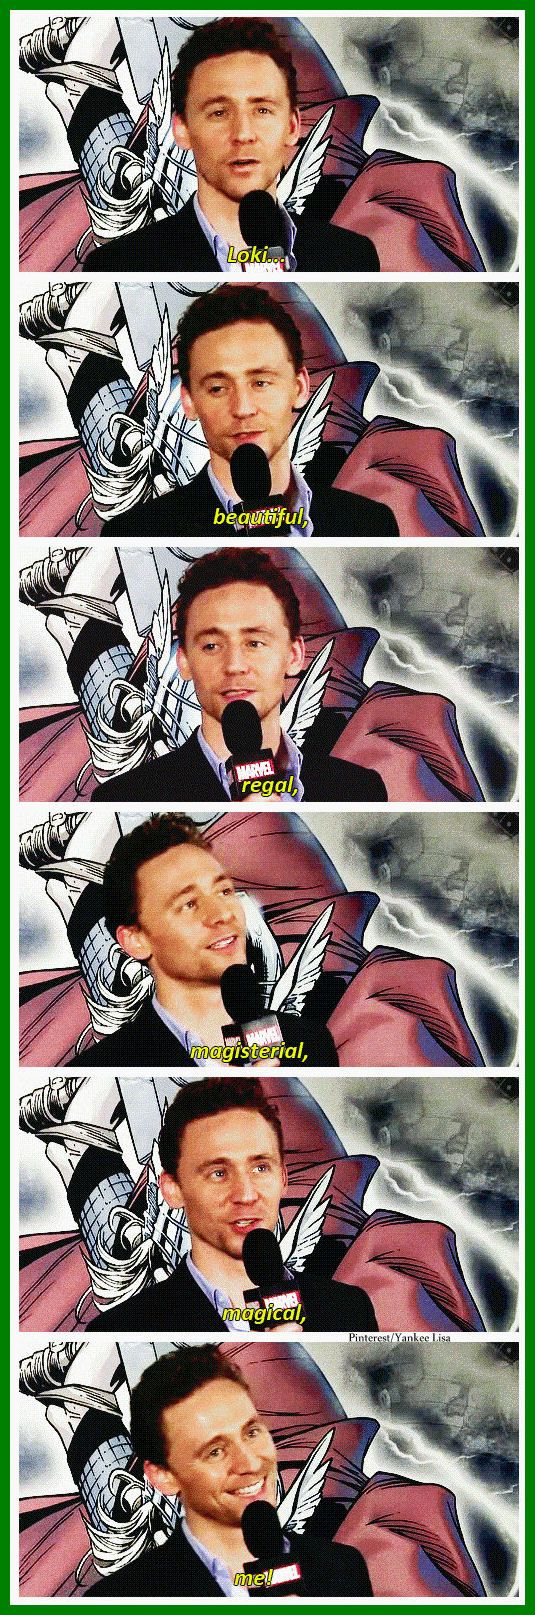 Marvel:The Avengers - Thor: The Dark World - Loki - Tom Hiddleston